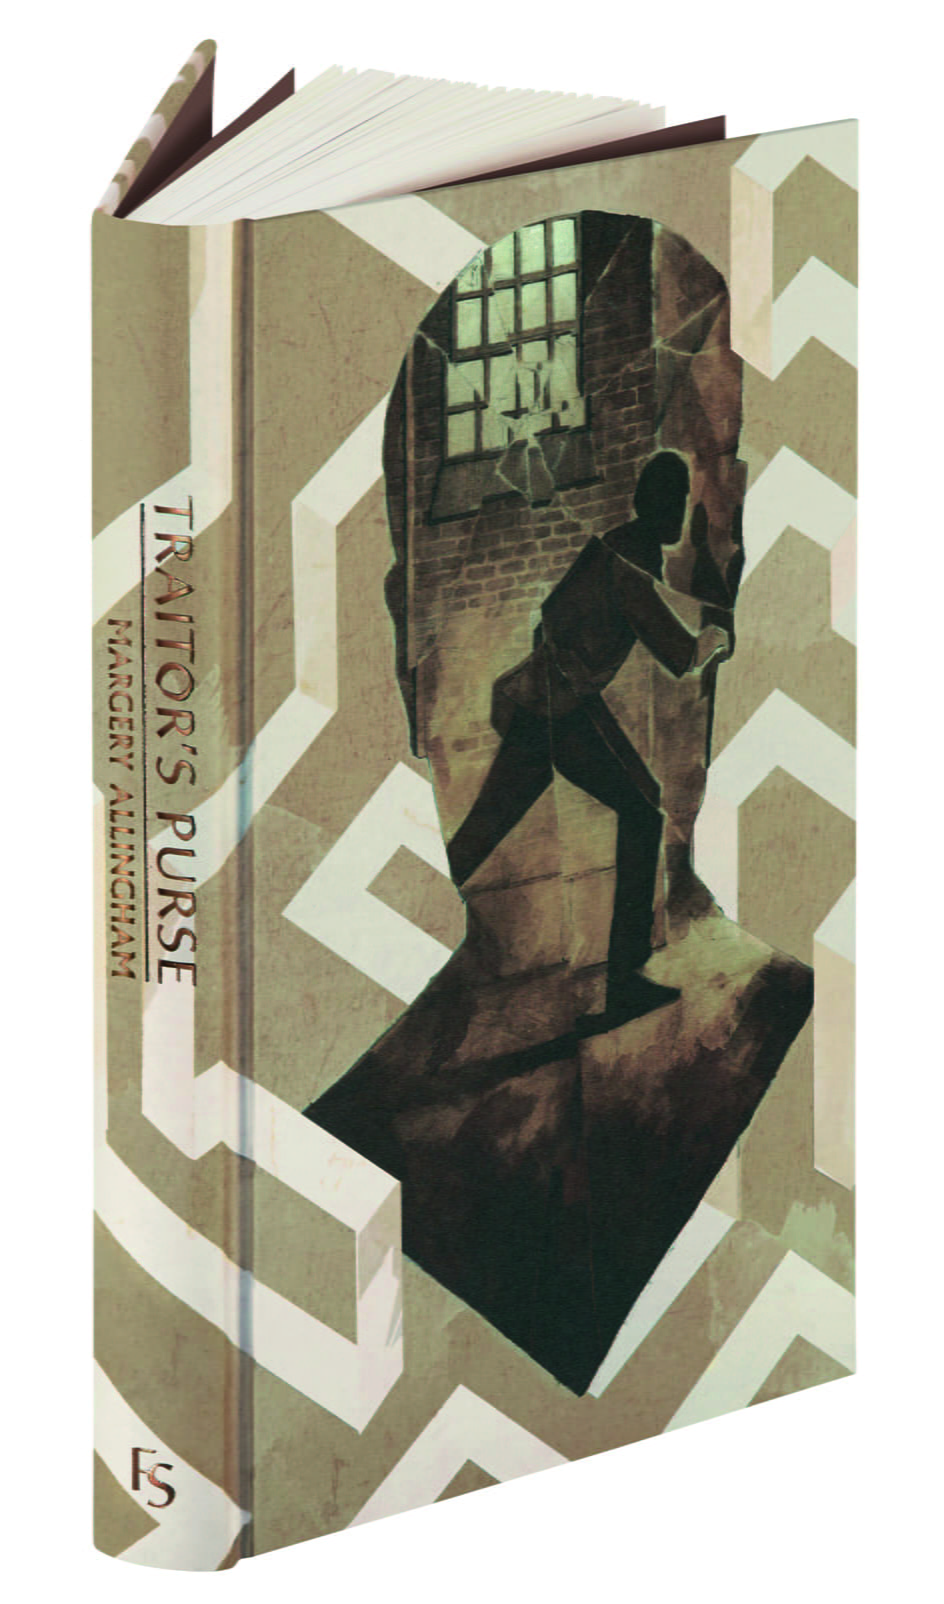 'The Folio Society' Written by Margery Allingham, Illustrated by James Boswell